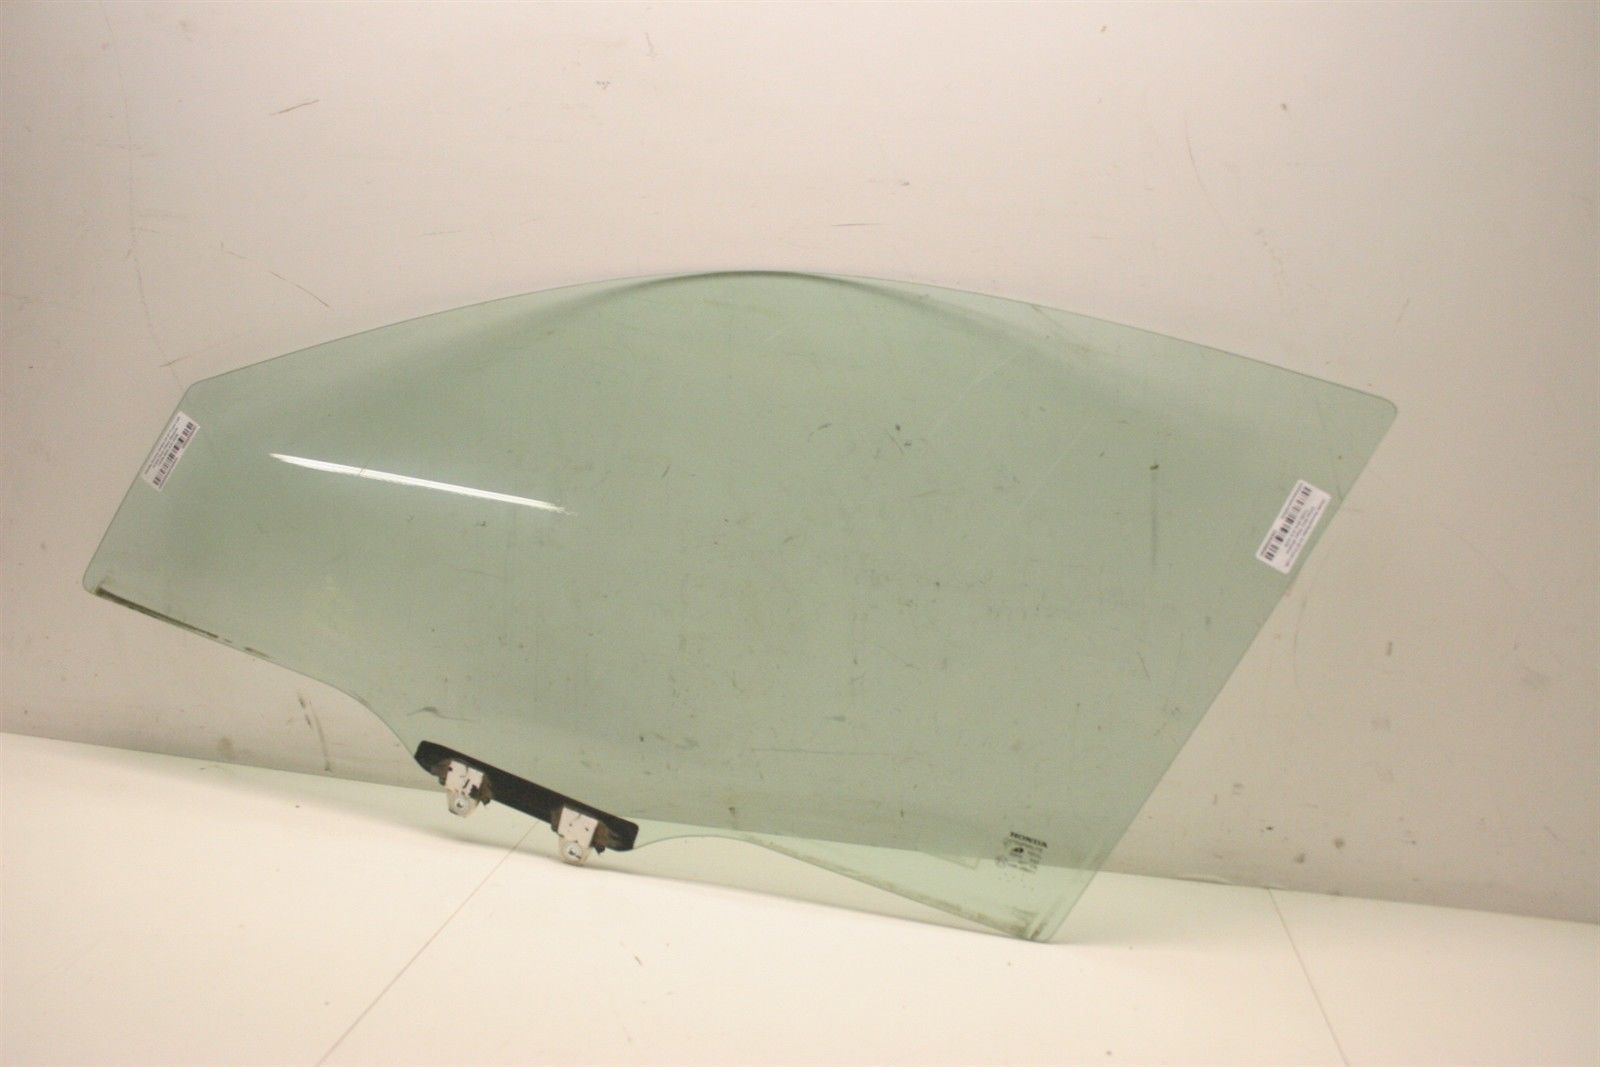 Honda Accord Sedan 03-07 Driver Door Glass Window, Front Left Side 73350-SDC-A01